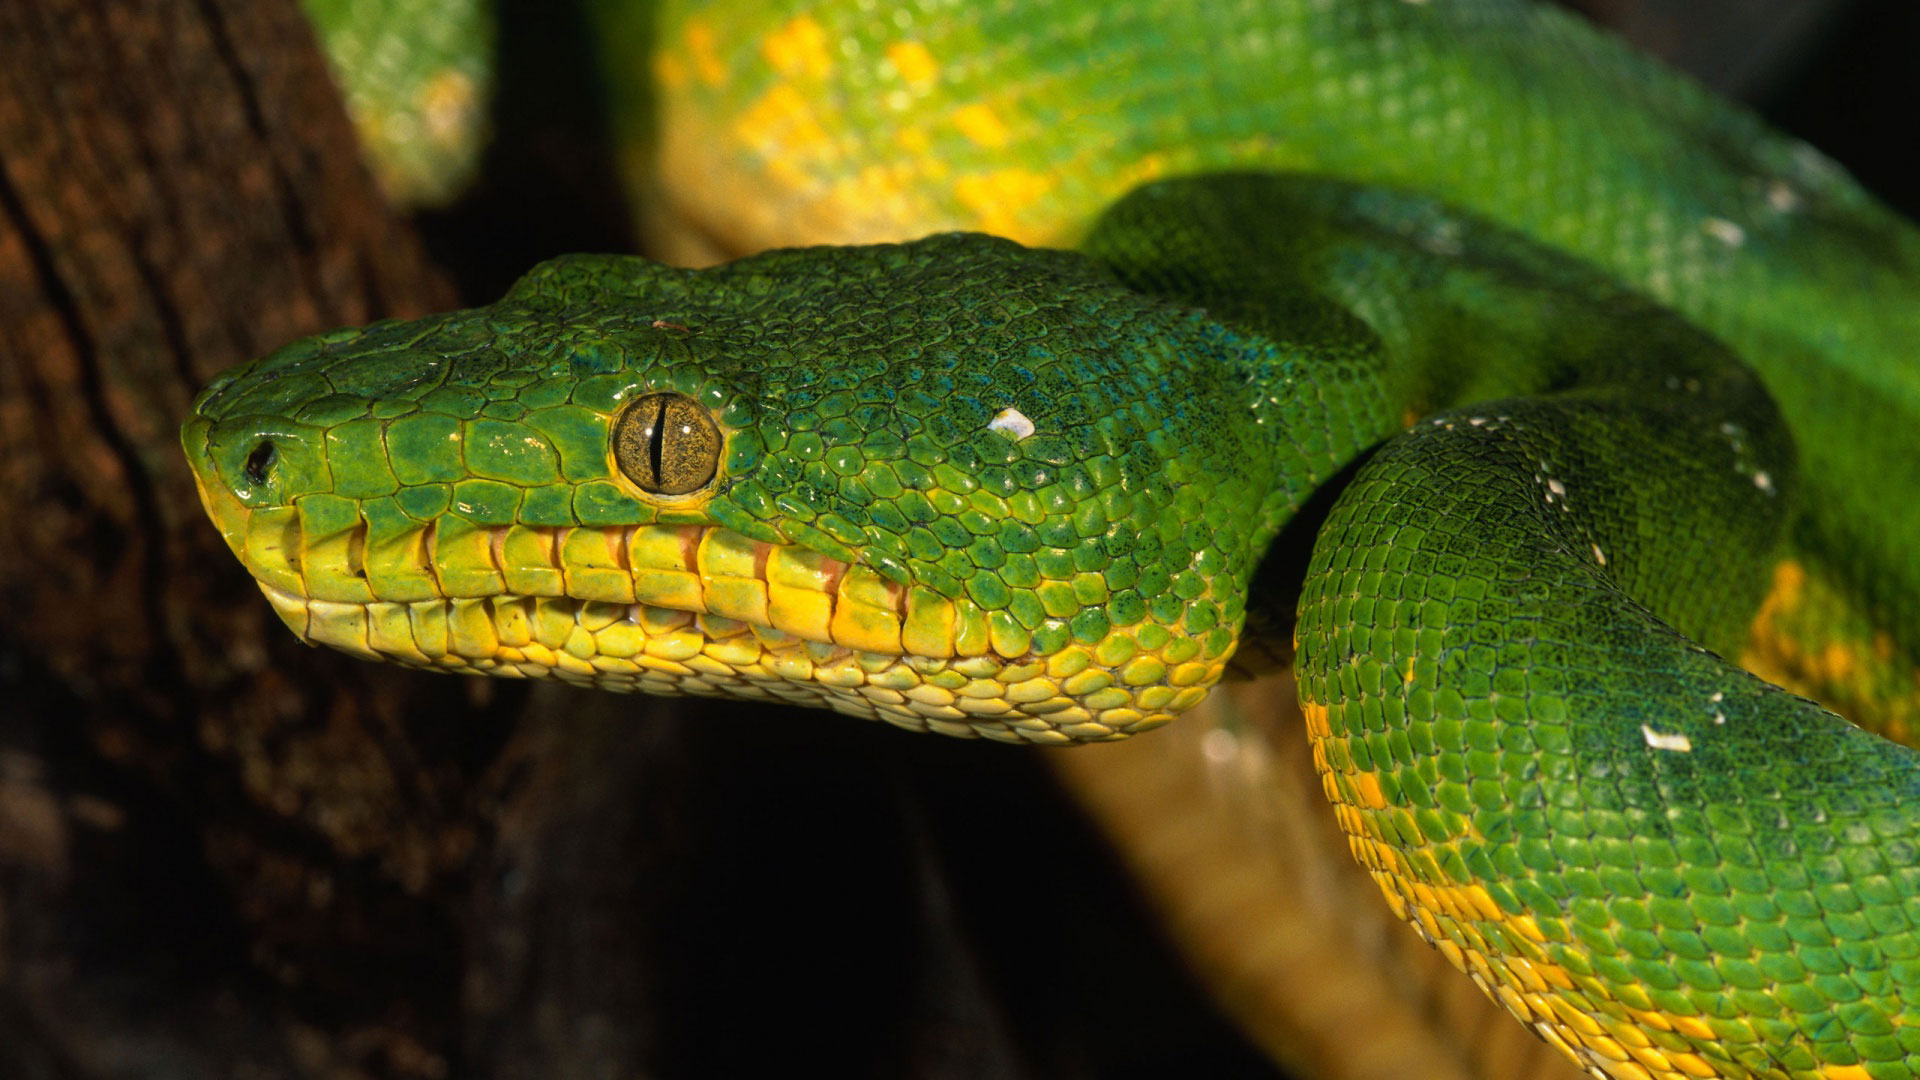 Cute Baby Animal Pictures Wallpapers Yellow Green Snake Widescreen Hd Resolution 1920x1080